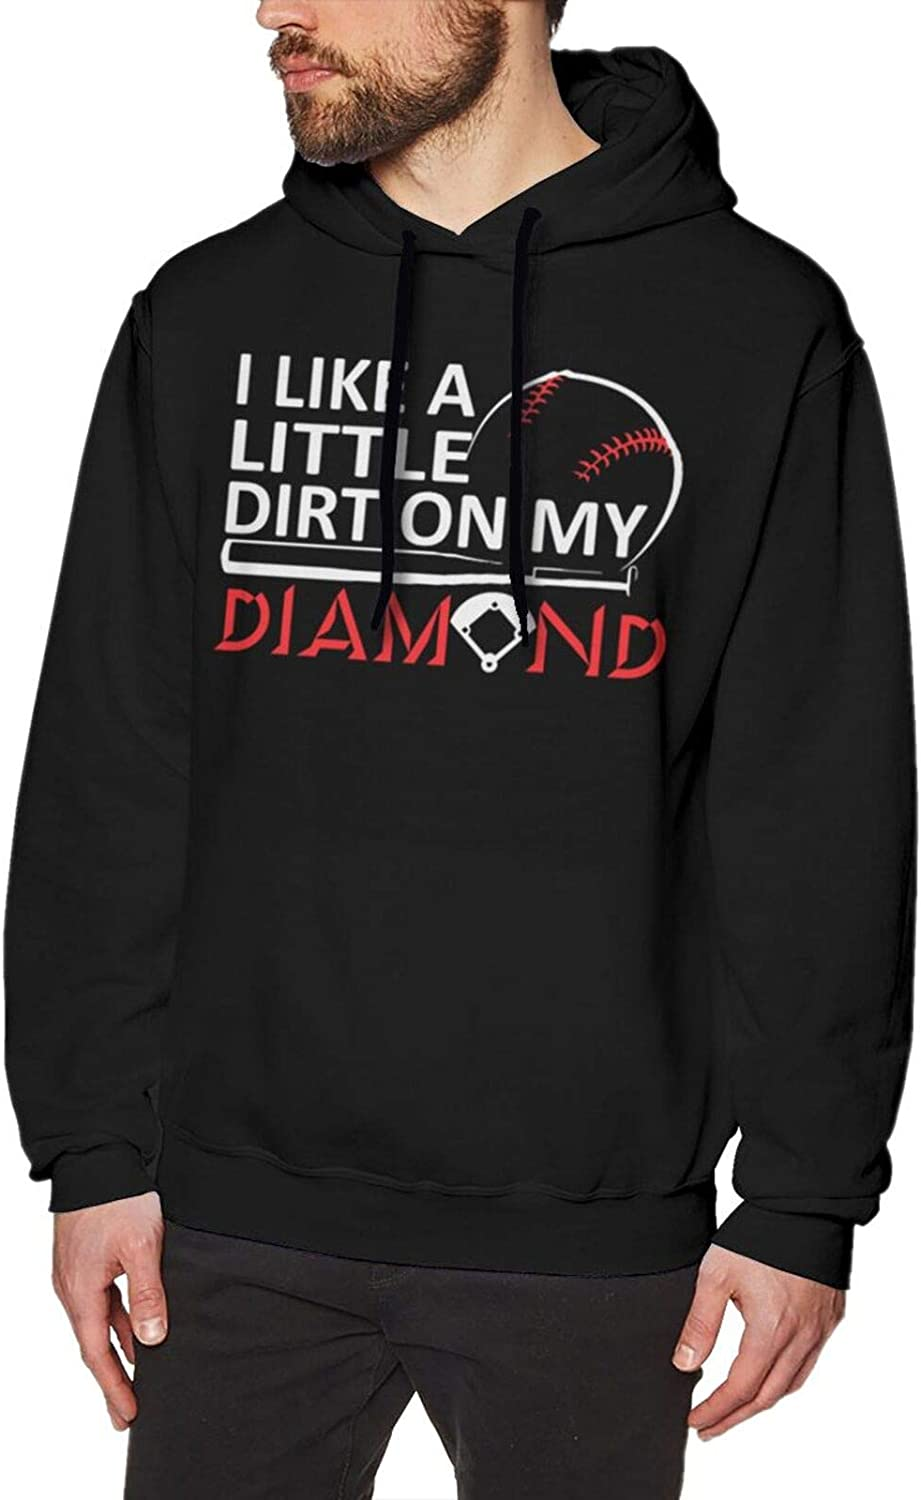 Popular brand in the world RHRFOL Casual Unisex Hoodie Sweatshirt I All items free shipping m dirt a on little like